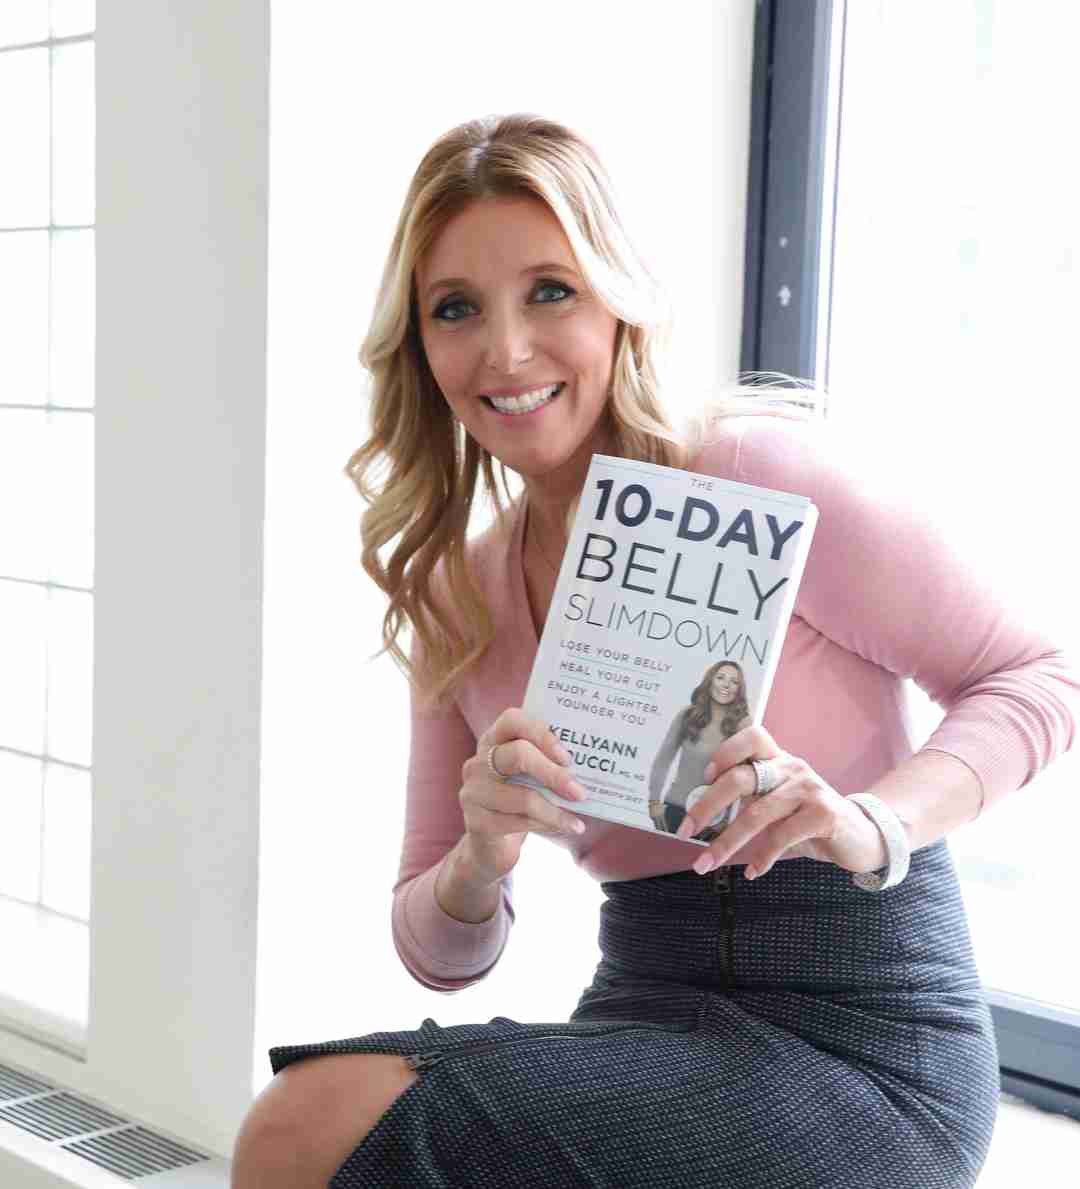 Dr. Kellyann Petrucci holding the 10-Day Belly Slimdown book